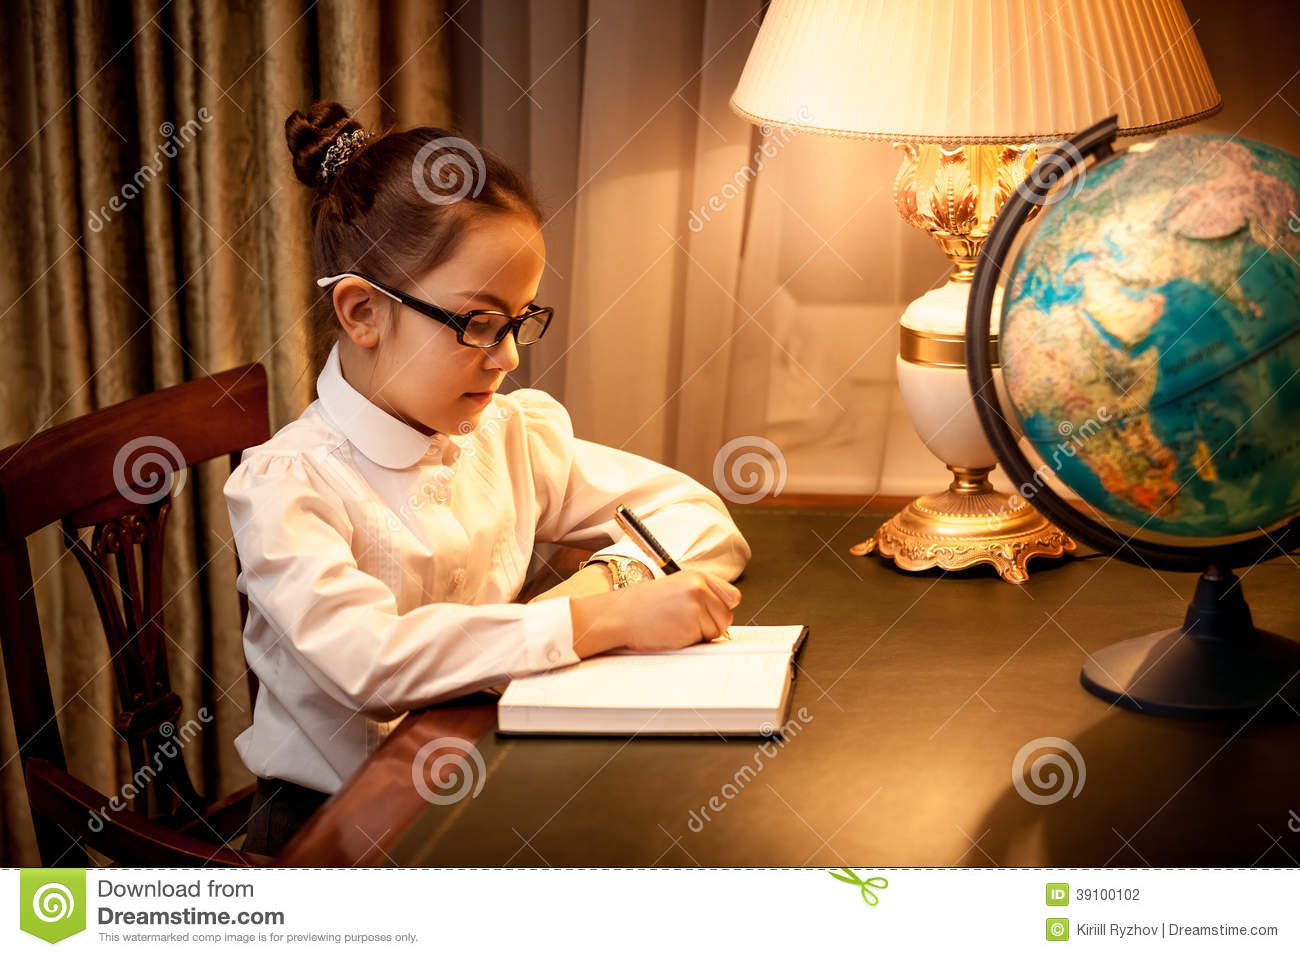 Schoolboy Looking At Girl While Writing At Desk